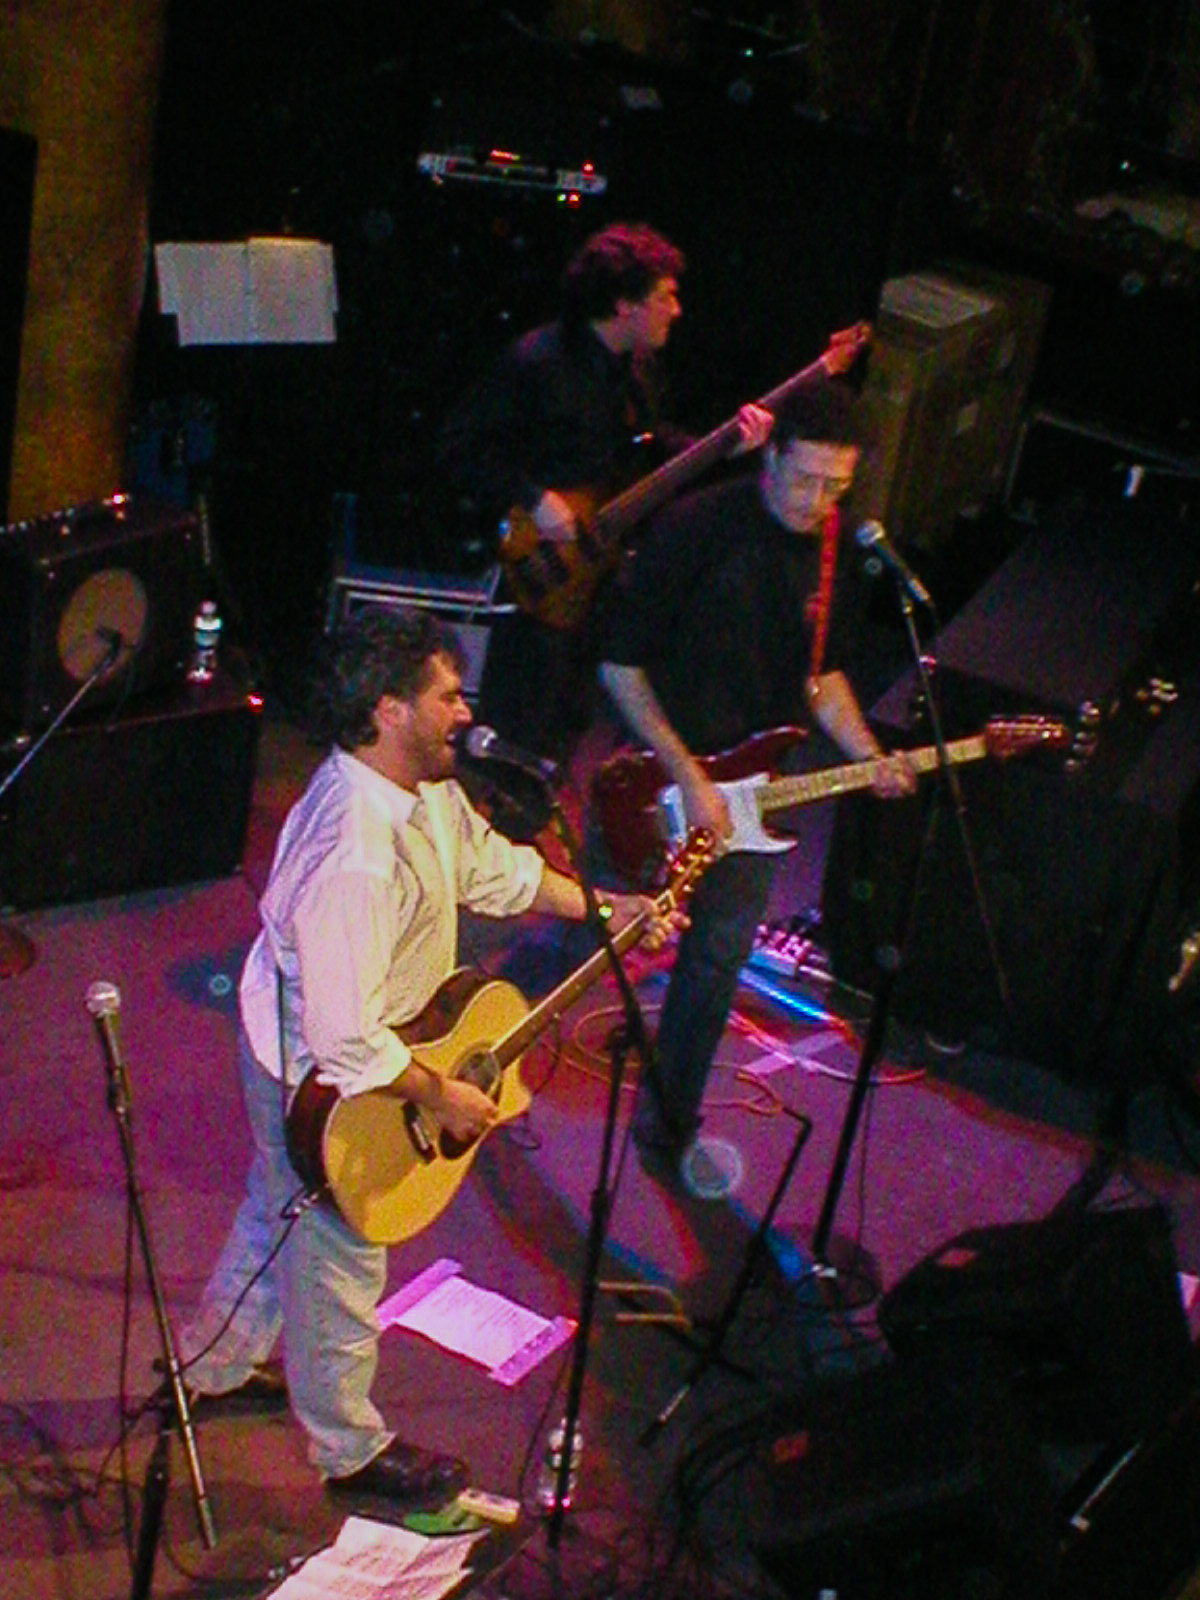 12.17.03 - The Great American Music Hall, SF